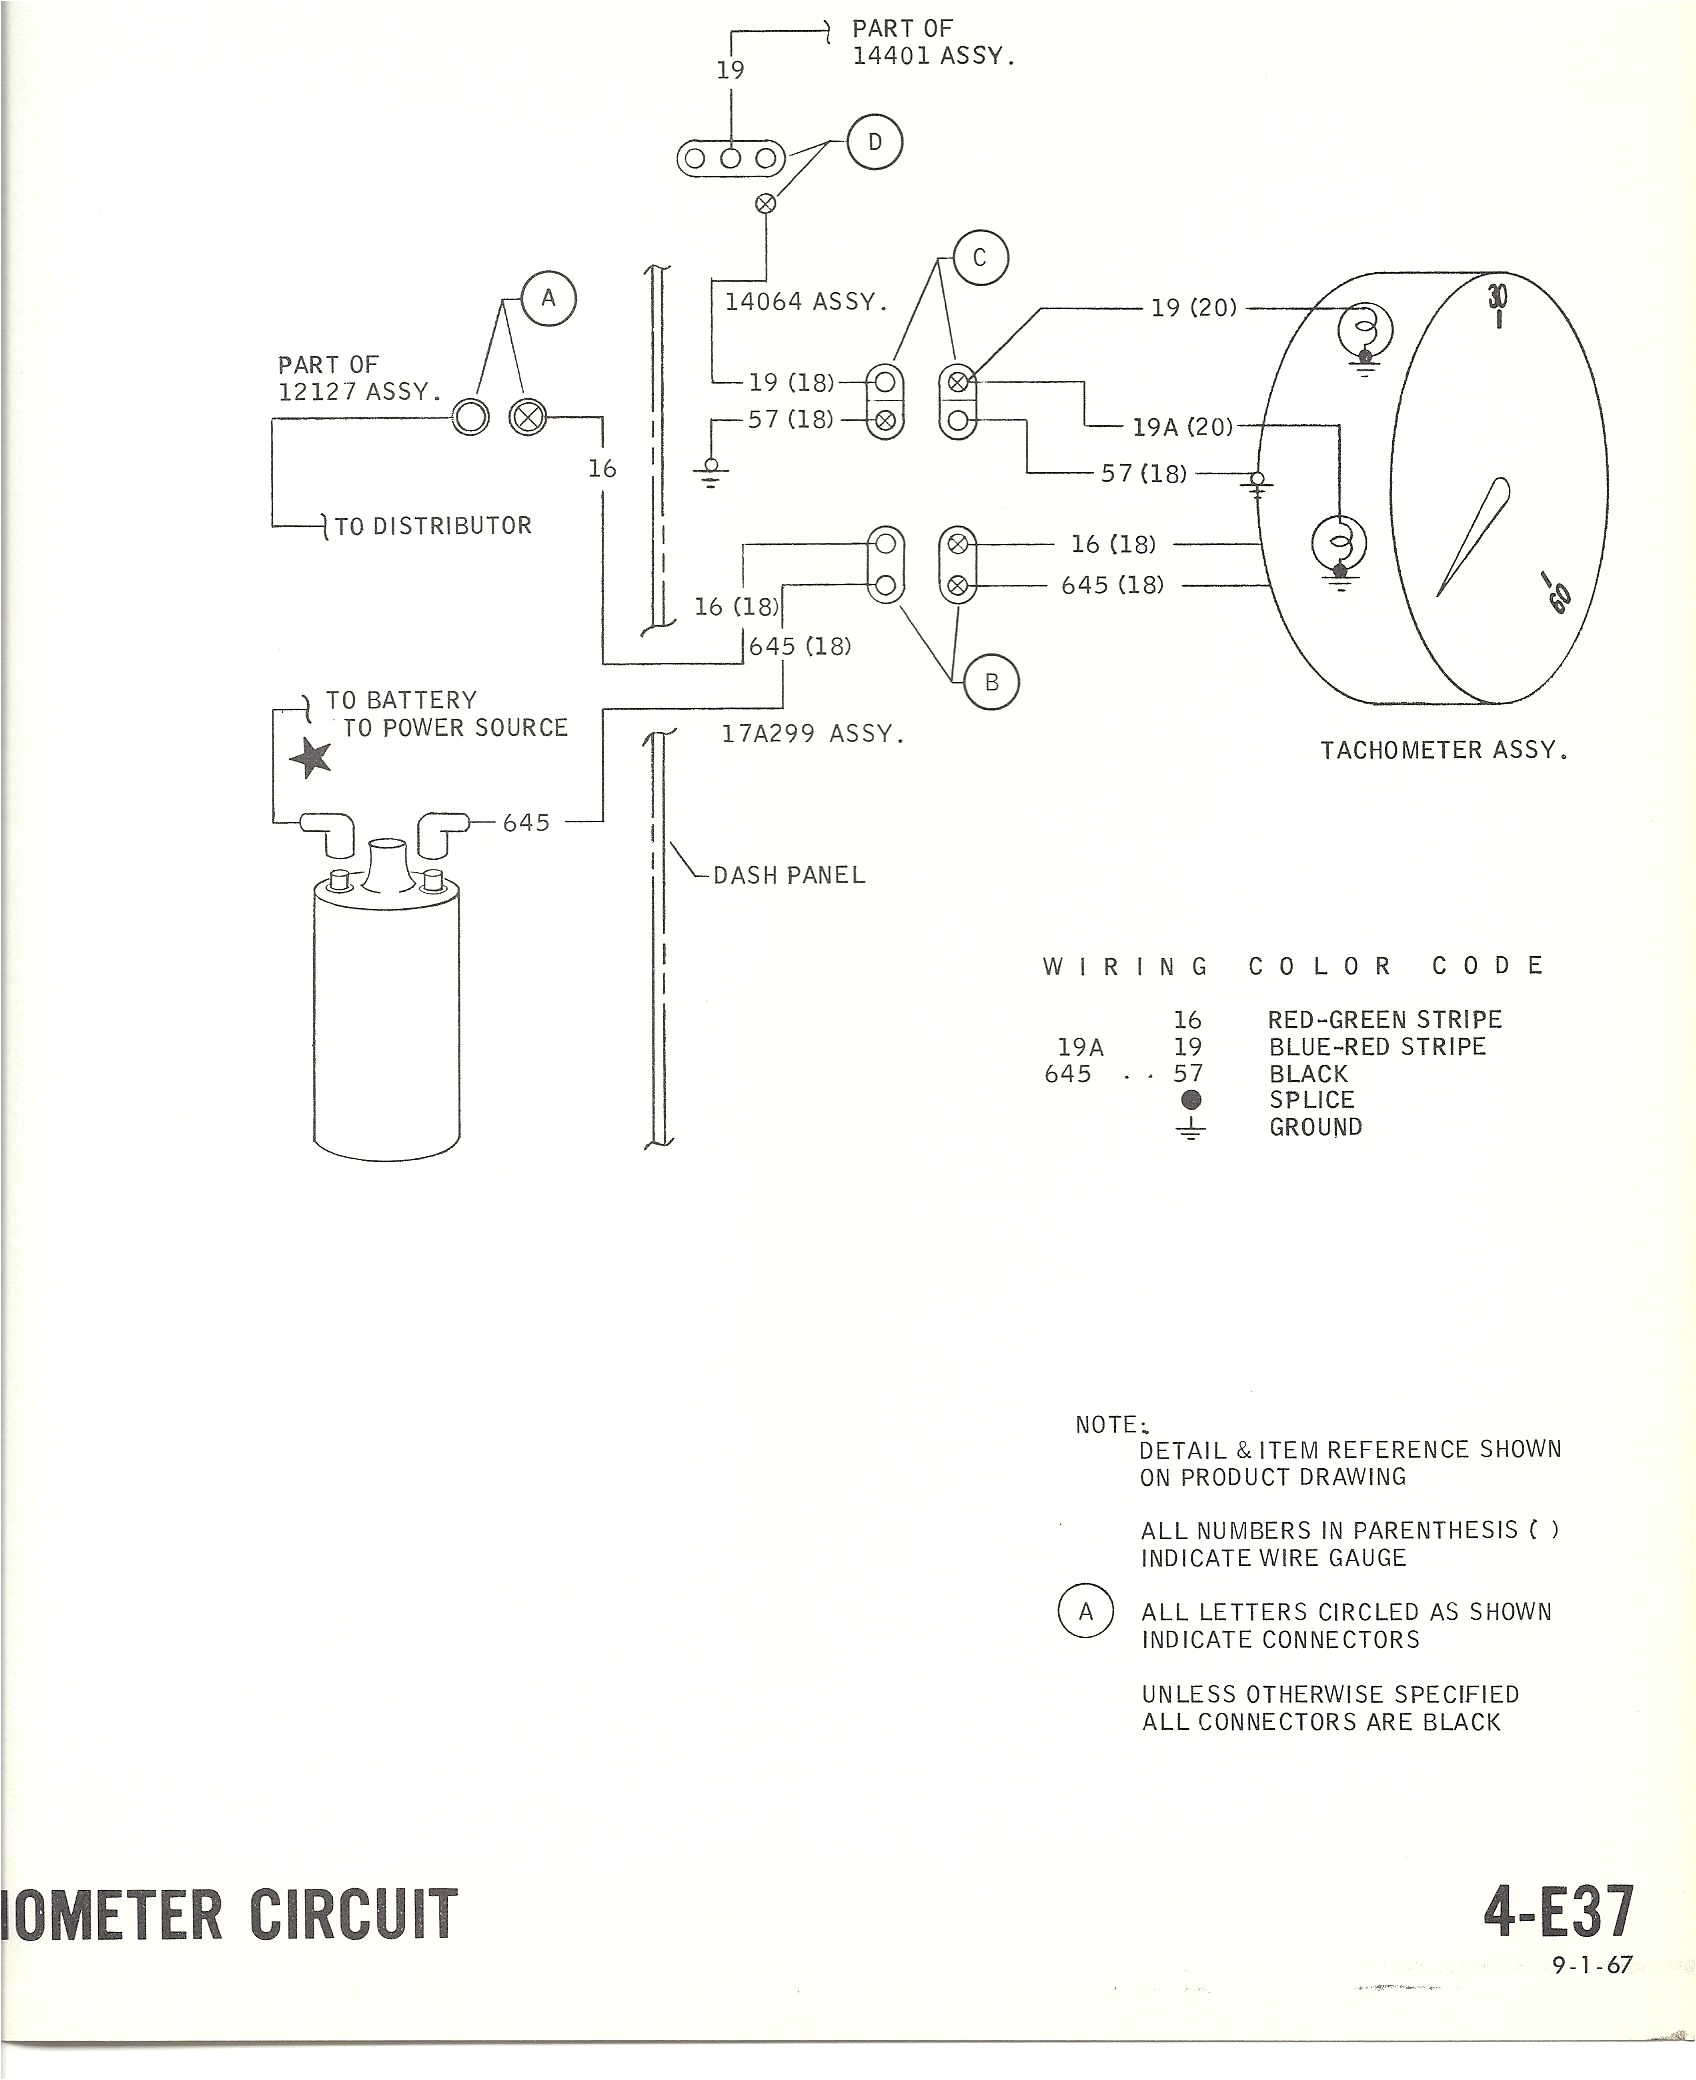 0 5 mustang tach wiring wiring diagram today 0 5 mustang tach wiring